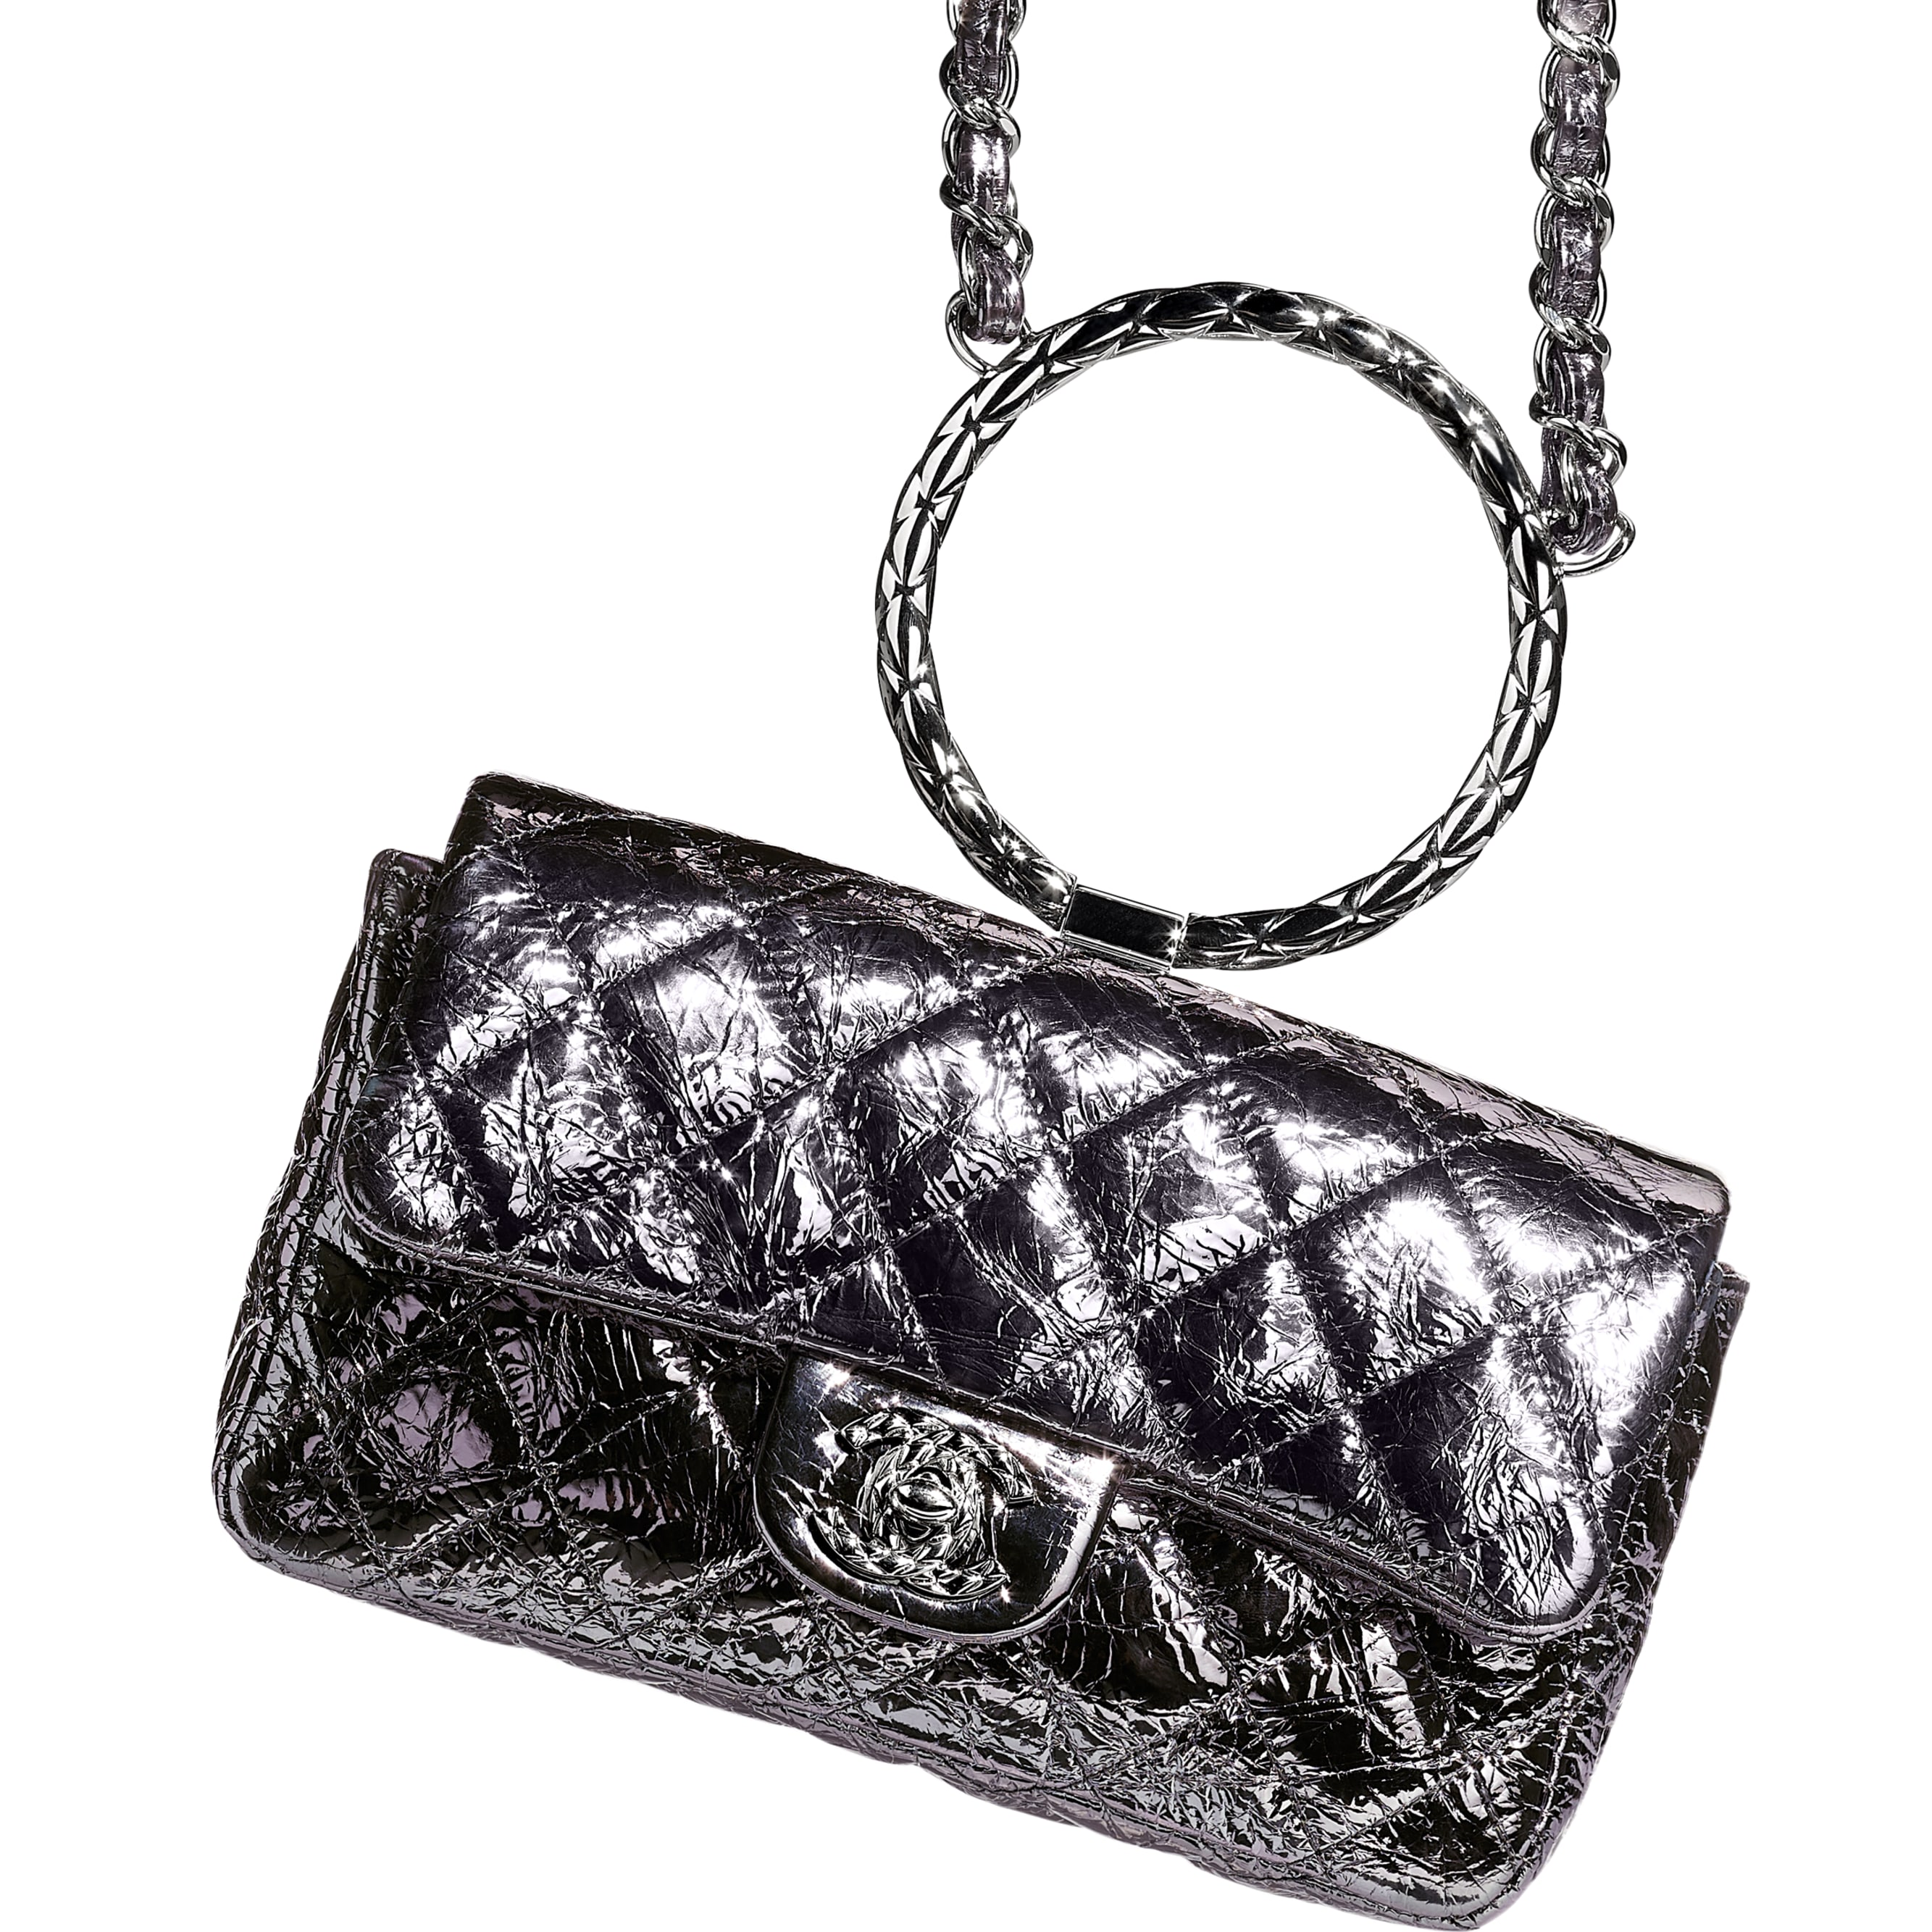 Flap Bag With Top Handle - Charcoal - Metallic Crackled Calfskin & Silver-Tone Metal - Extra view - see standard sized version